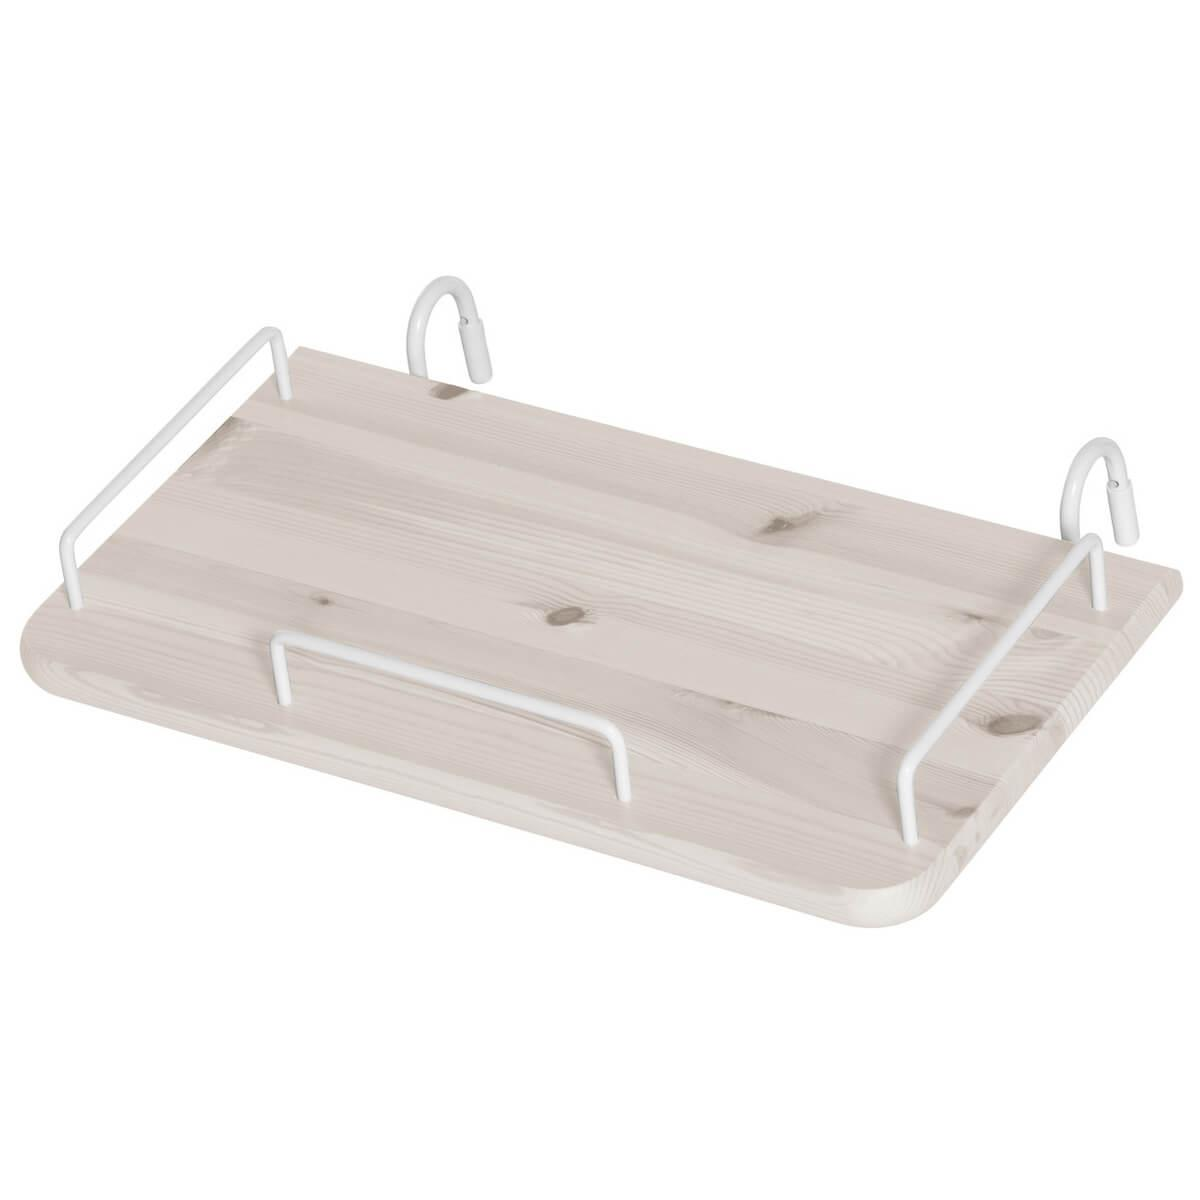 Table de chevet Flexa blanchi